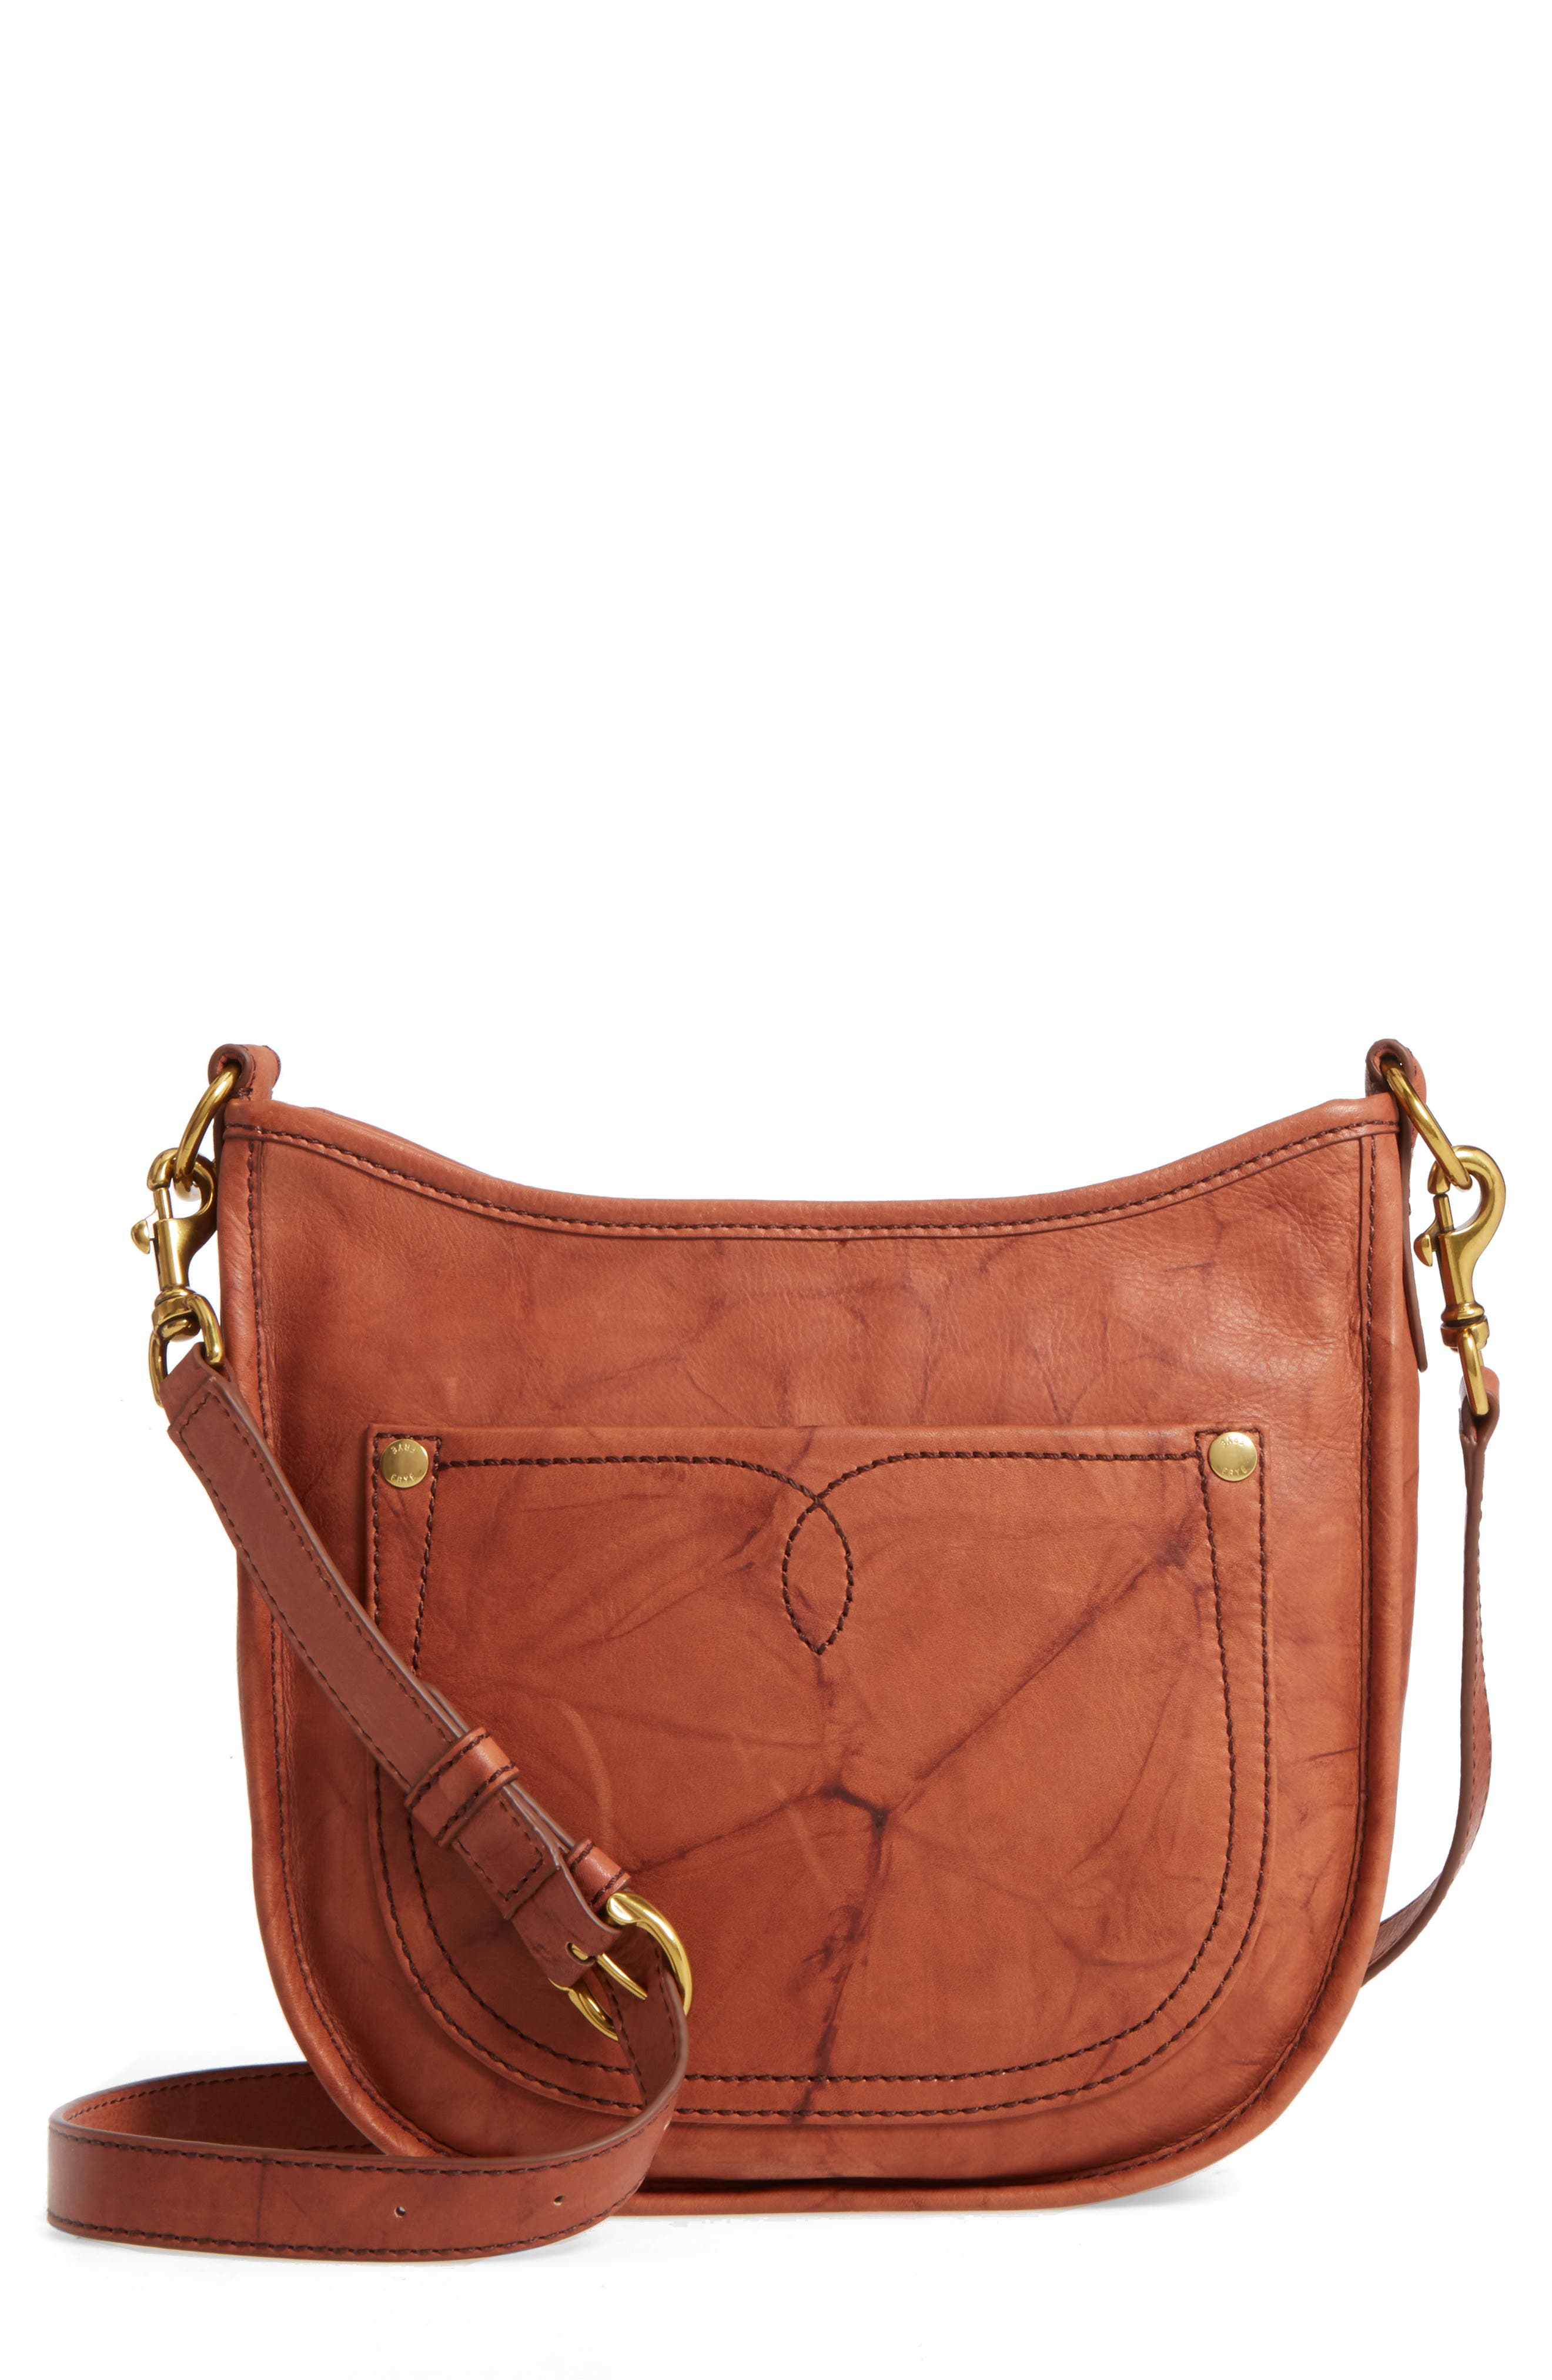 Campus Rivet Leather Crossbody Bag,                         Main,                         color, Saddle